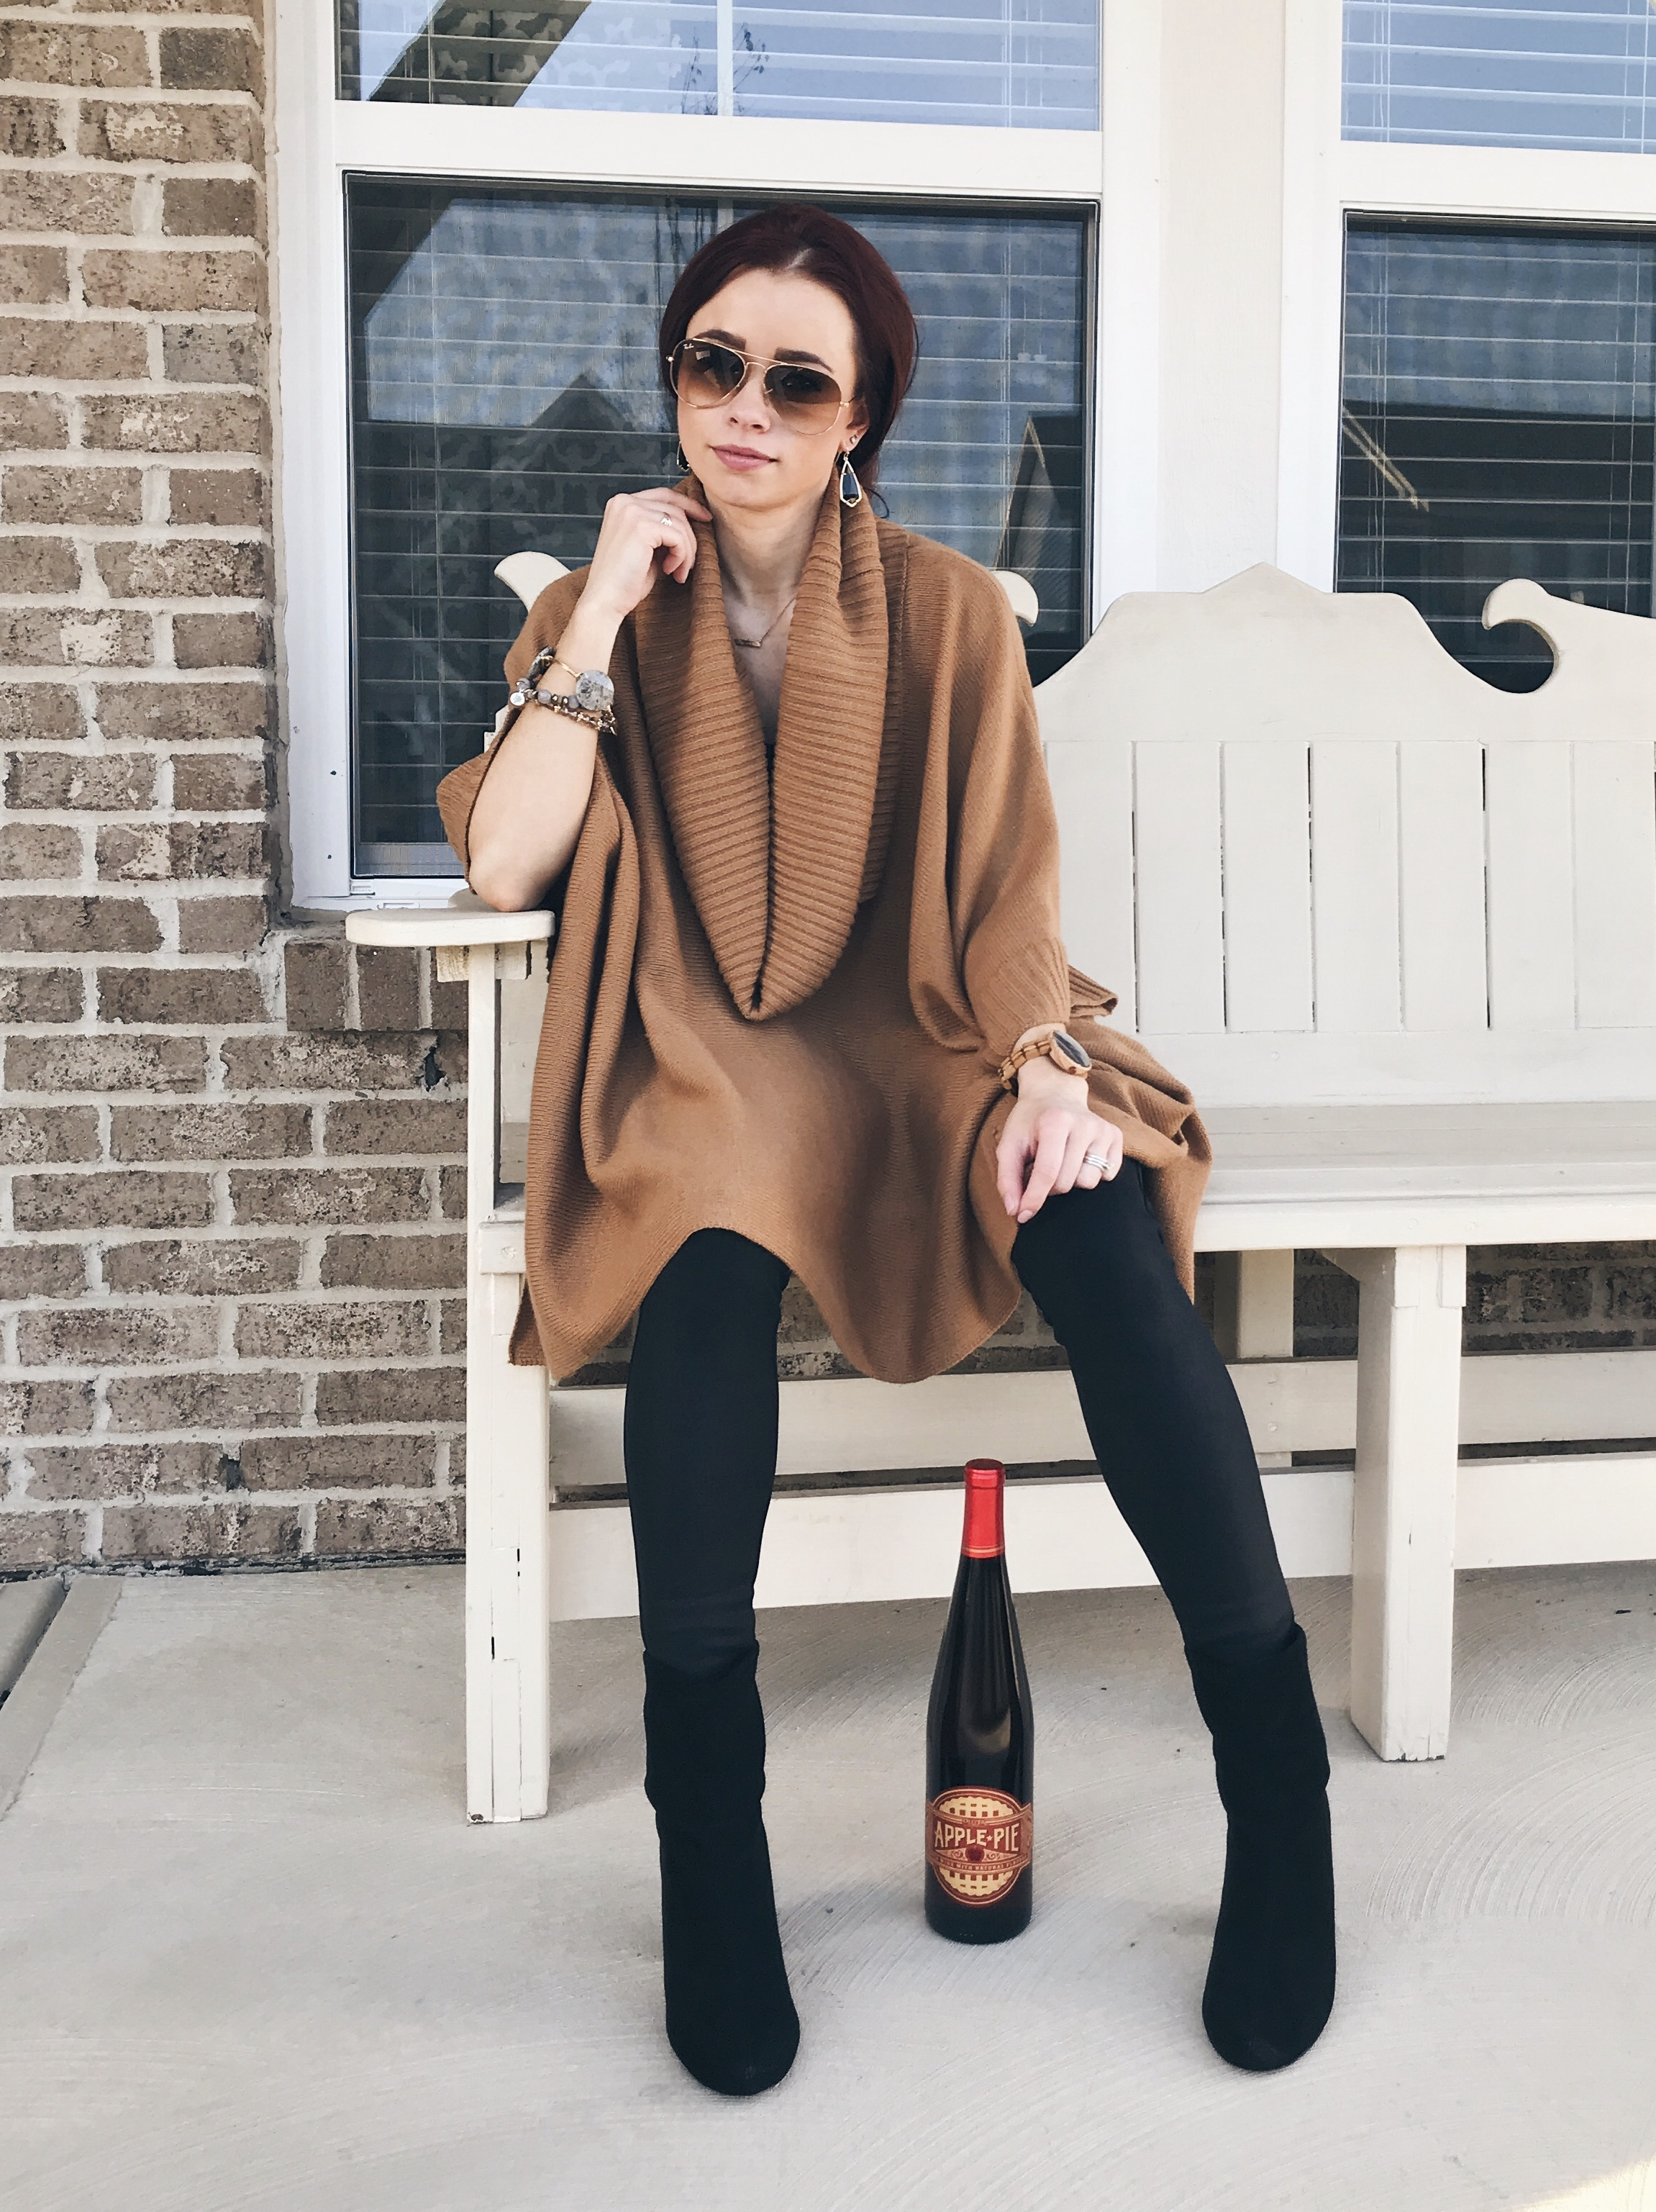 When I wore this oversized poncho kind of top, I wasn't feeling well and pretty sure I drank that whole bottle of wine. I paired this with leather leggings from Express. This top is from H&M probably three years ago.